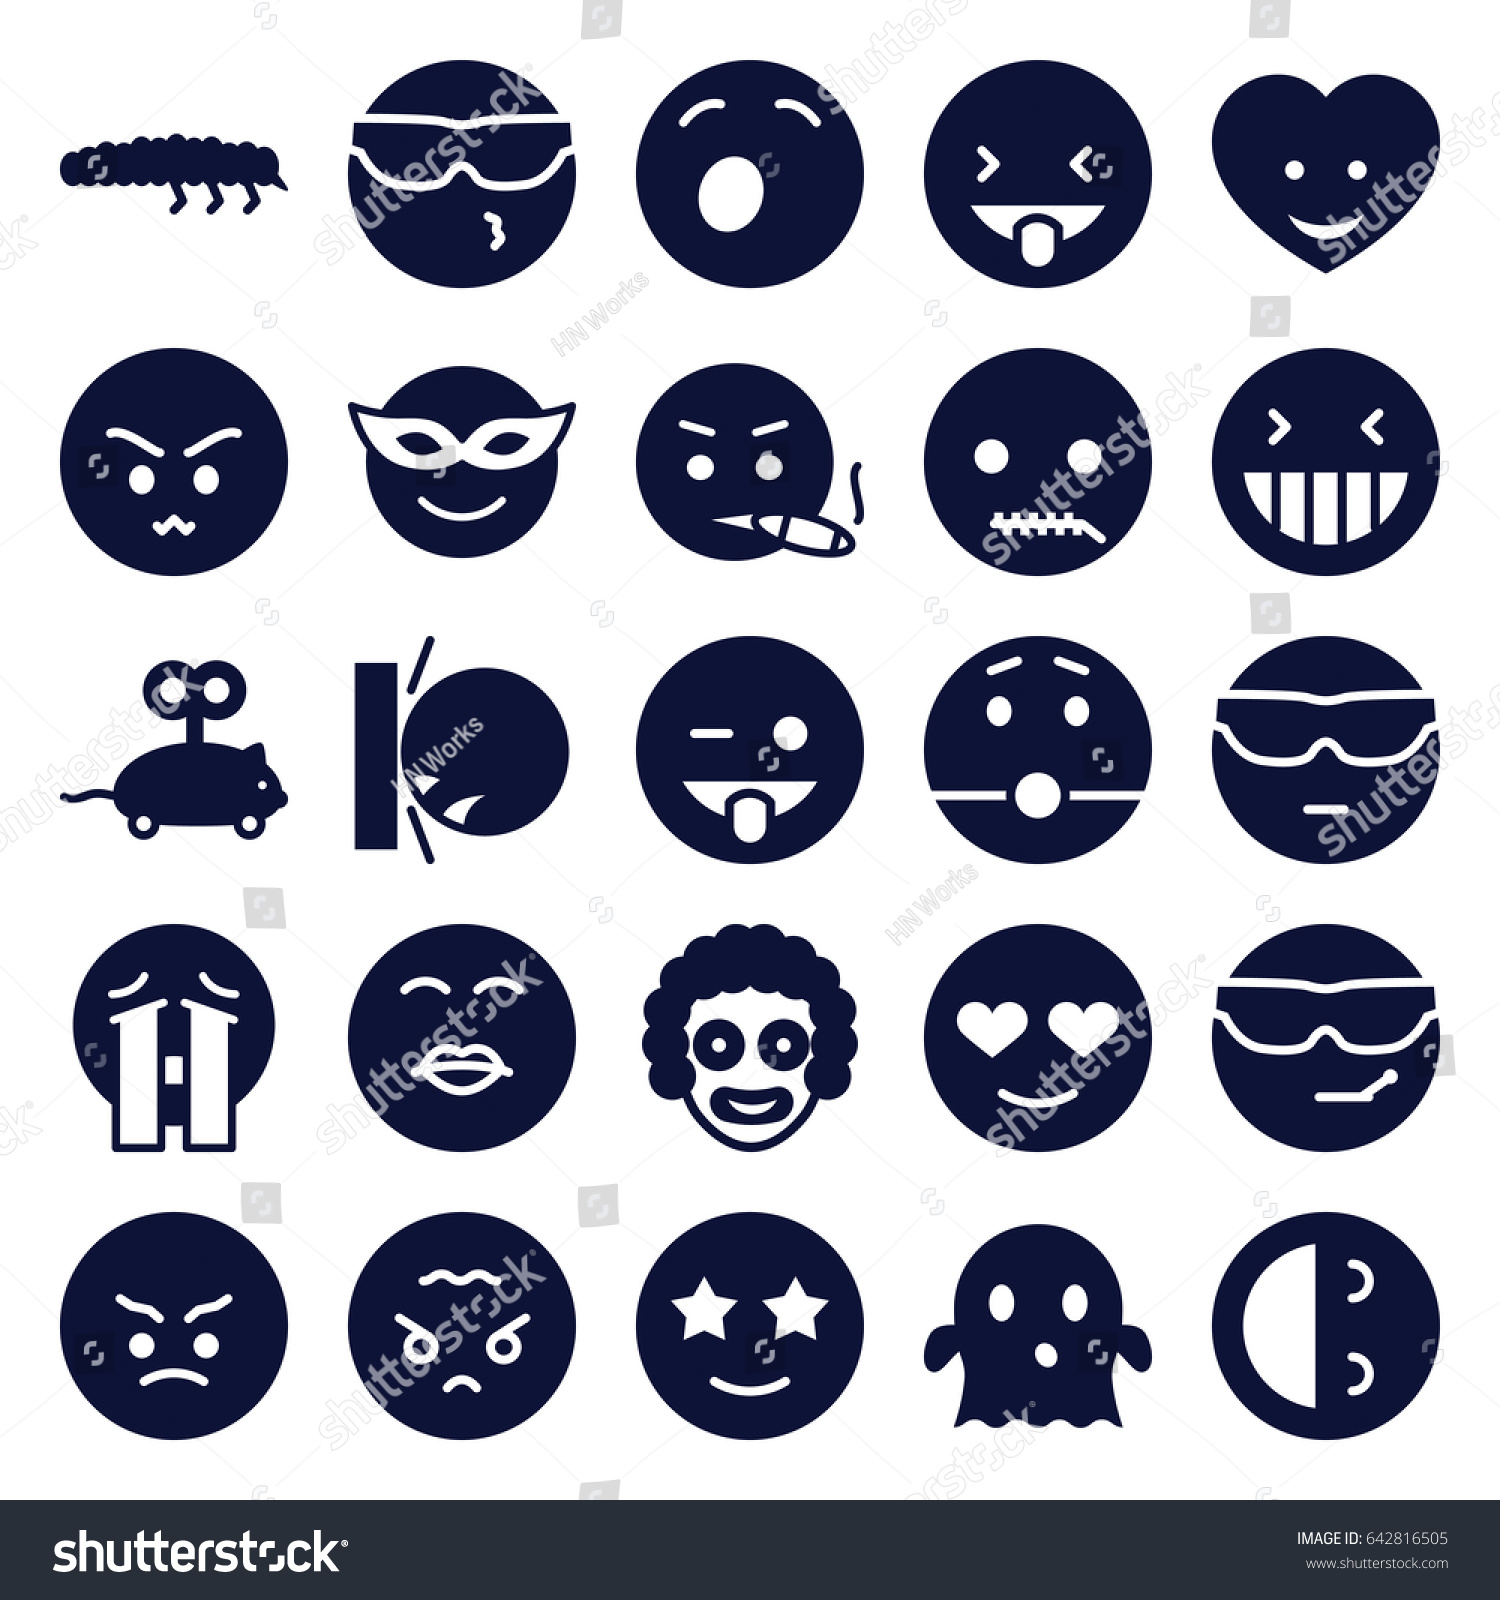 Funny Icons Set Set 25 Funny Stock Vector 642816505 - Shutterstock